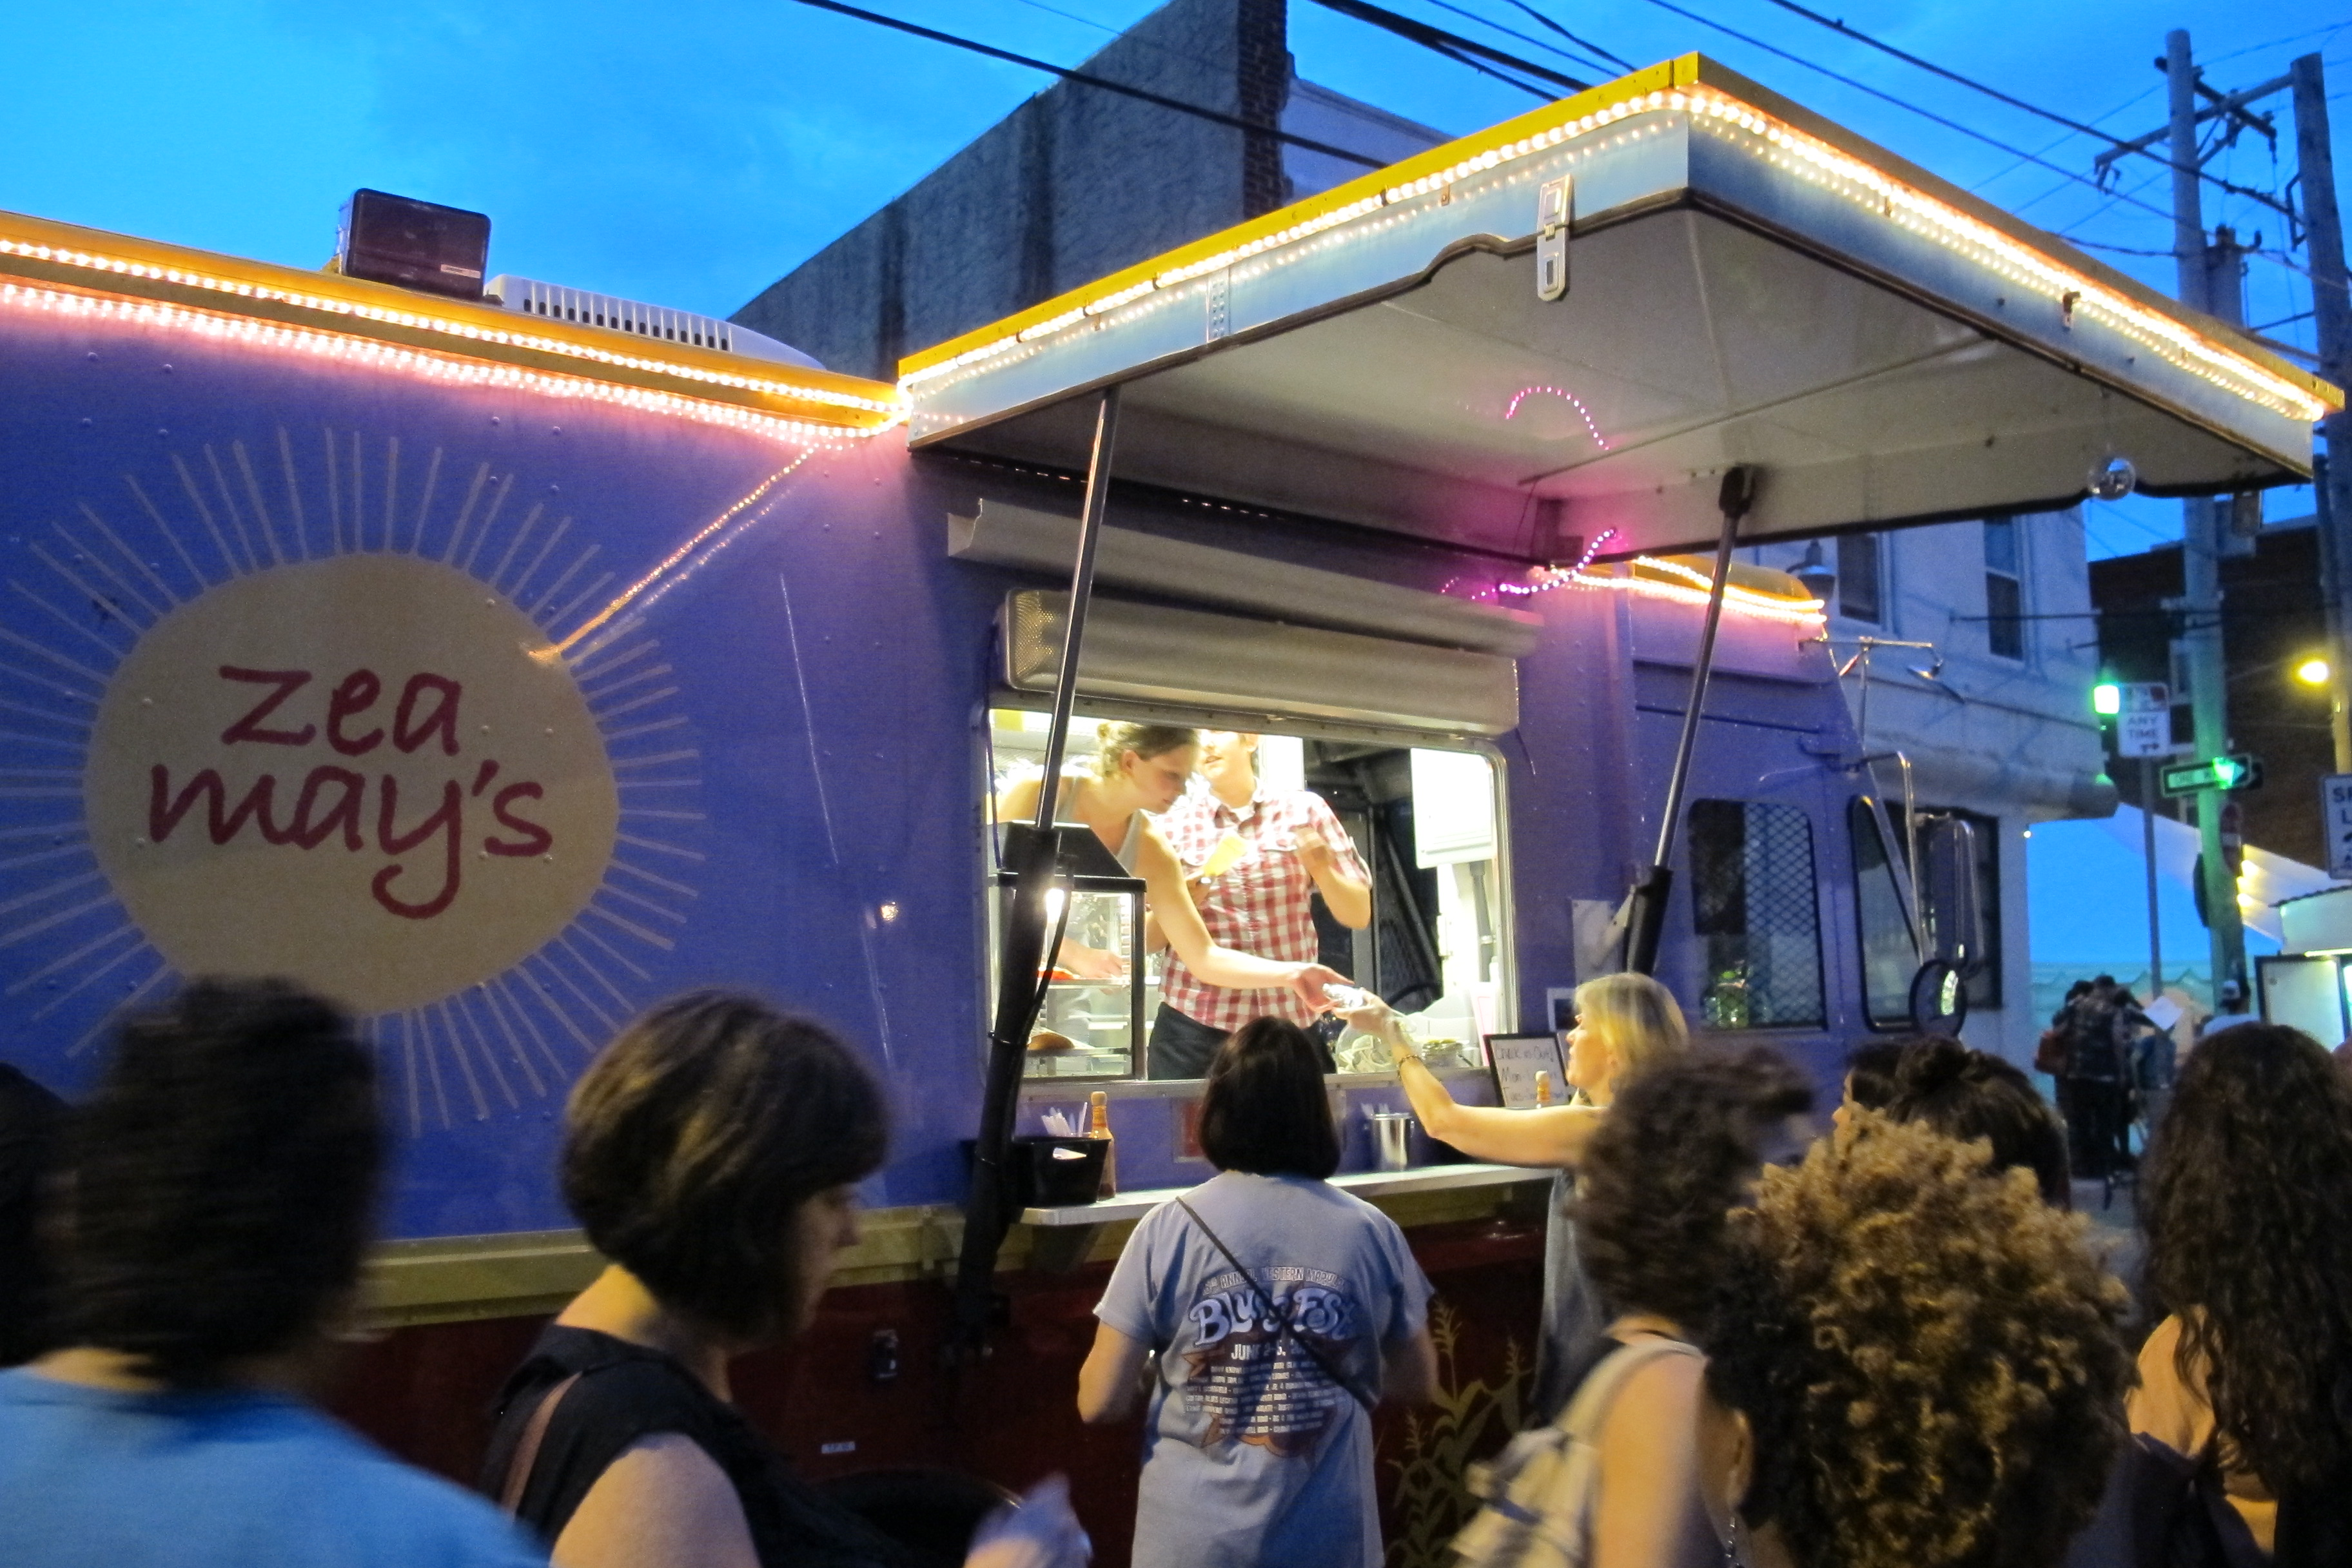 On Thursday Night Market returns to Germantown Avenue in Mt. Airy with more than 50 vendors.